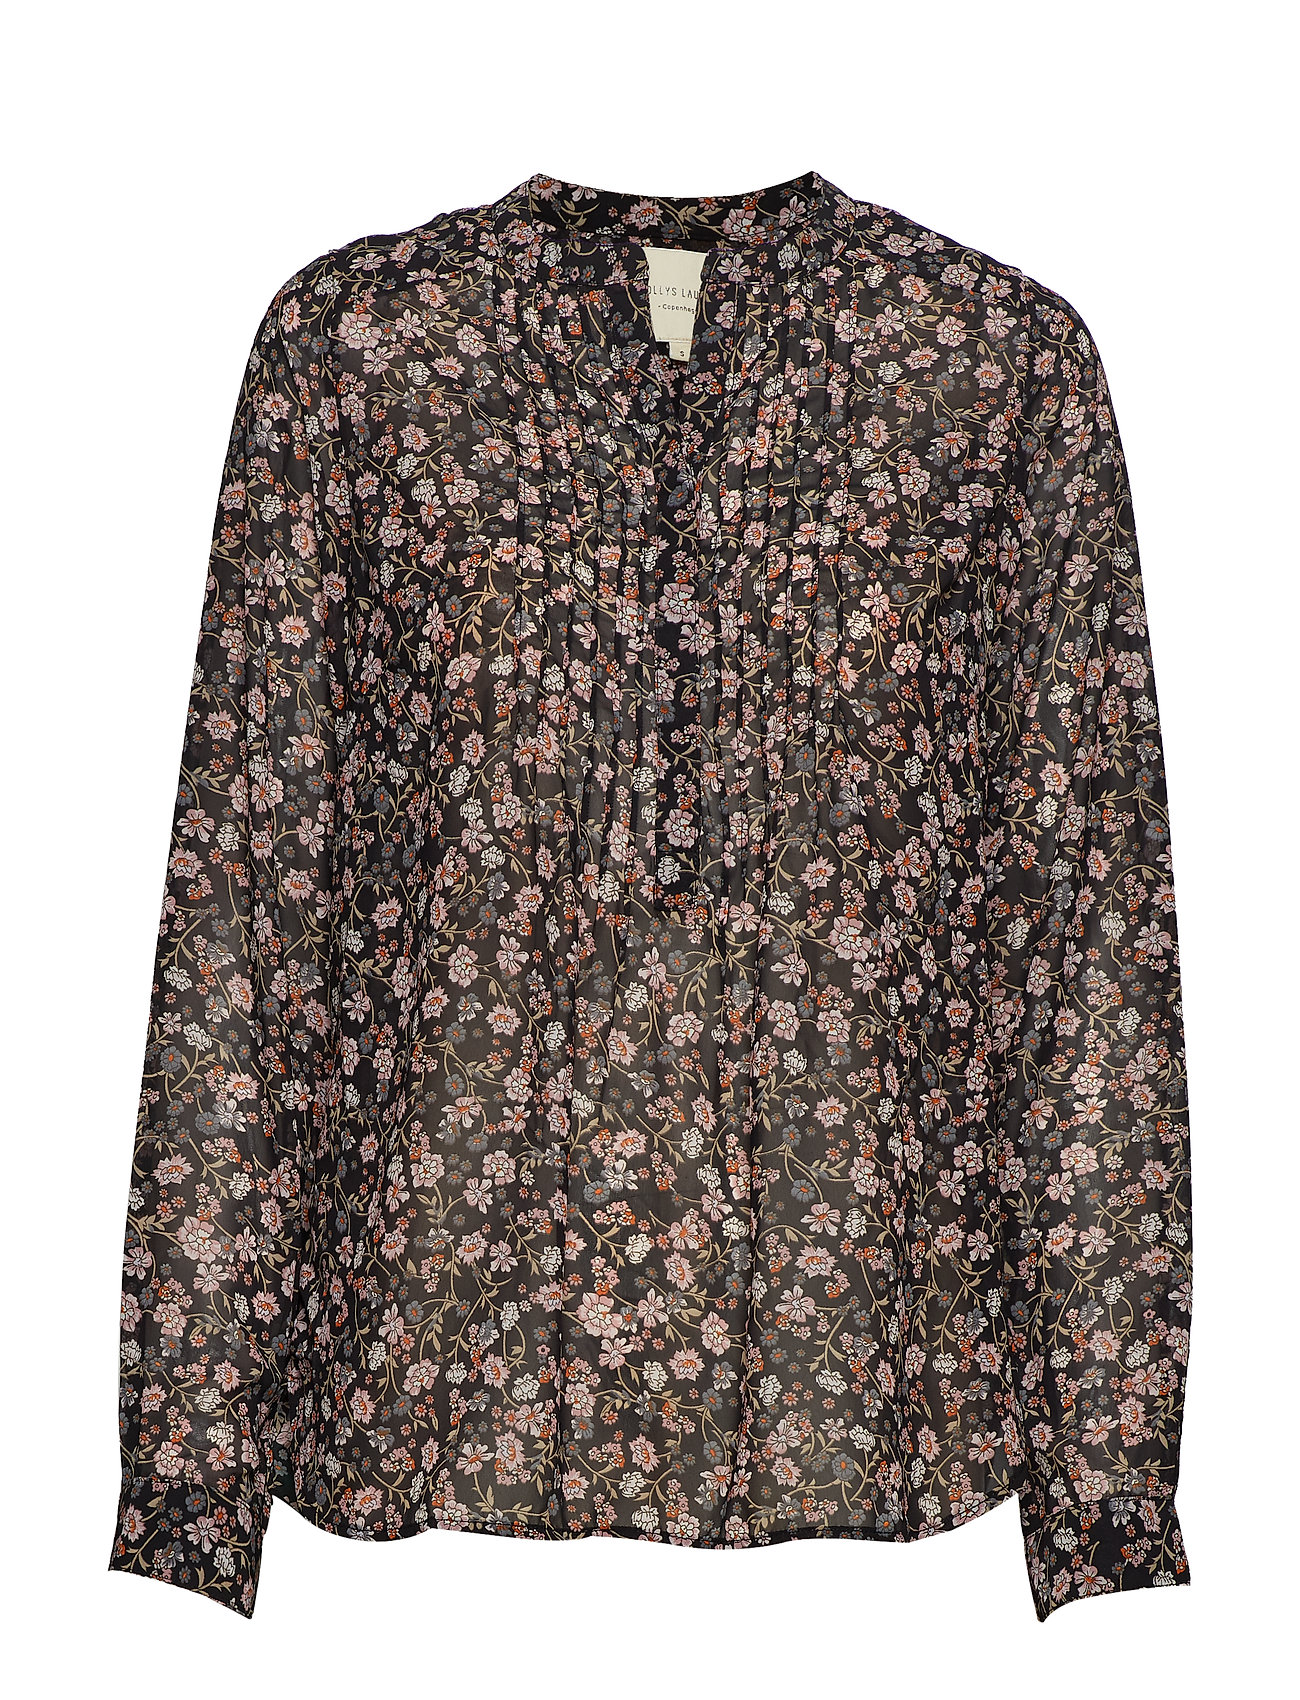 Lollys Laundry Helena Shirt - FLOWER PRINT